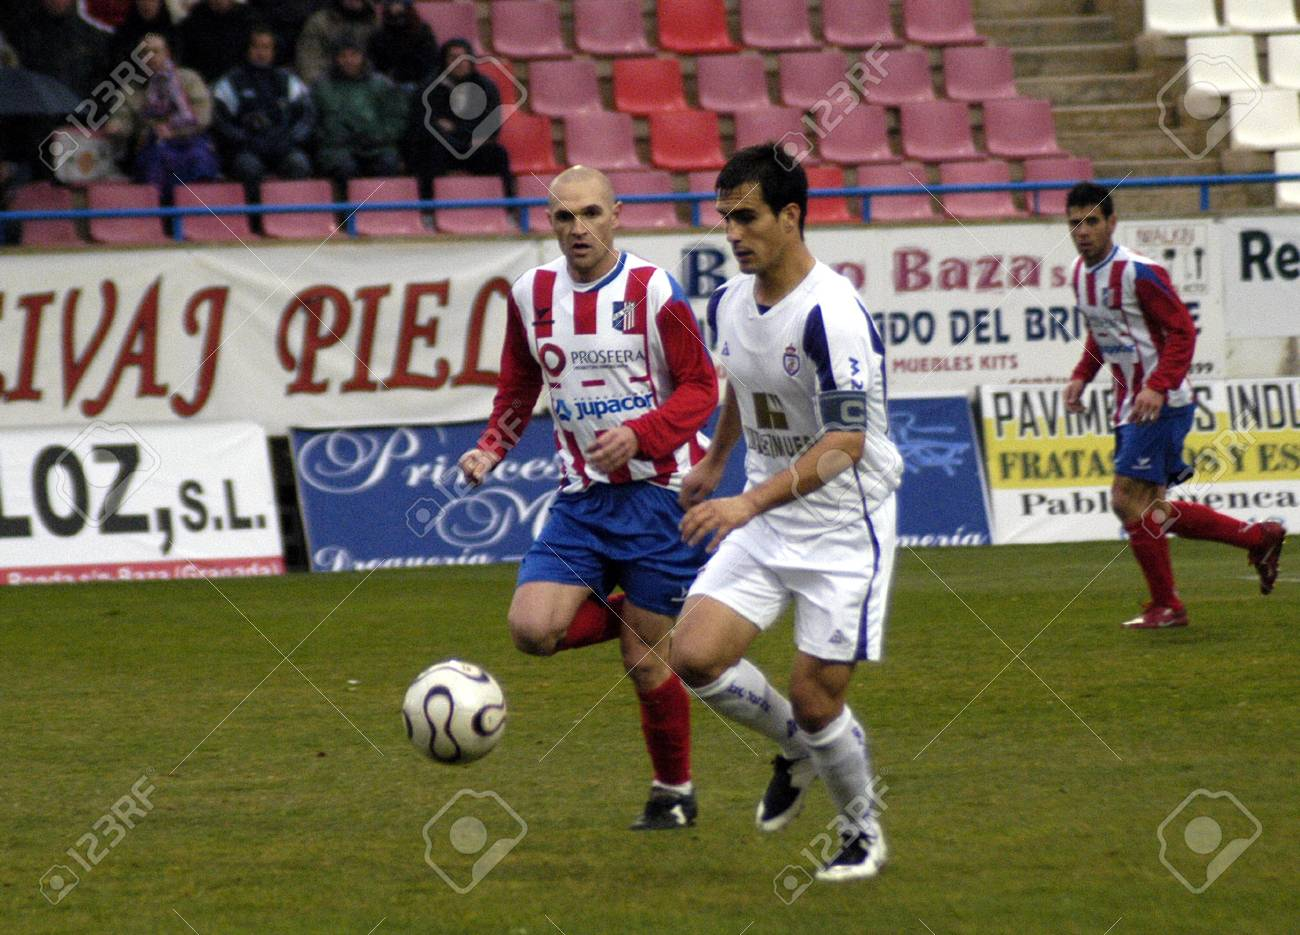 Muebles Baza 2008 02 17 Baza Granada Spain Football Game Between The